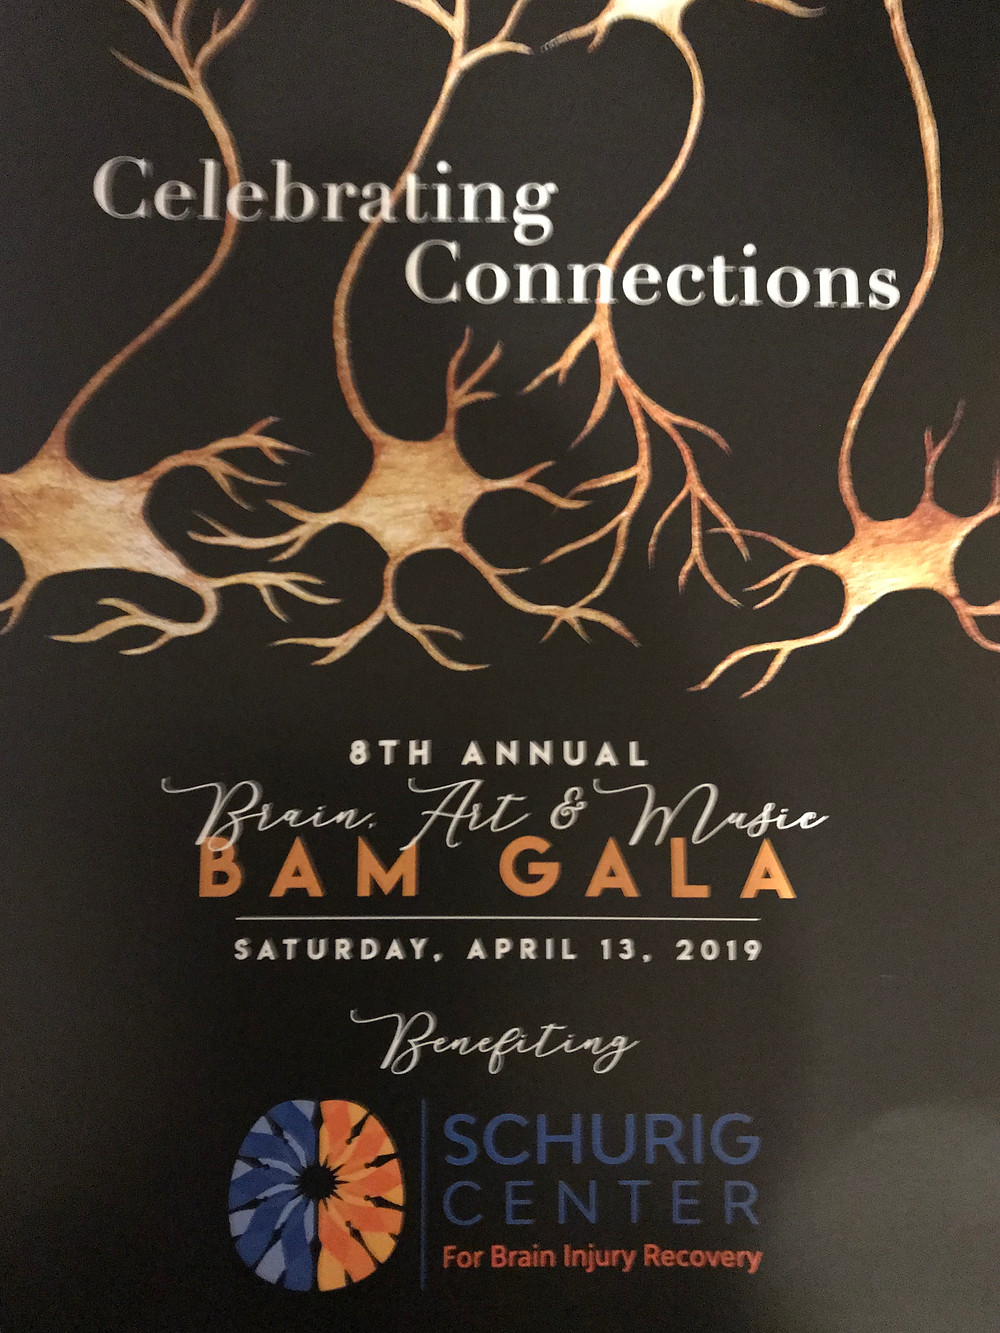 BAM Gala Celebrating Connections Poster